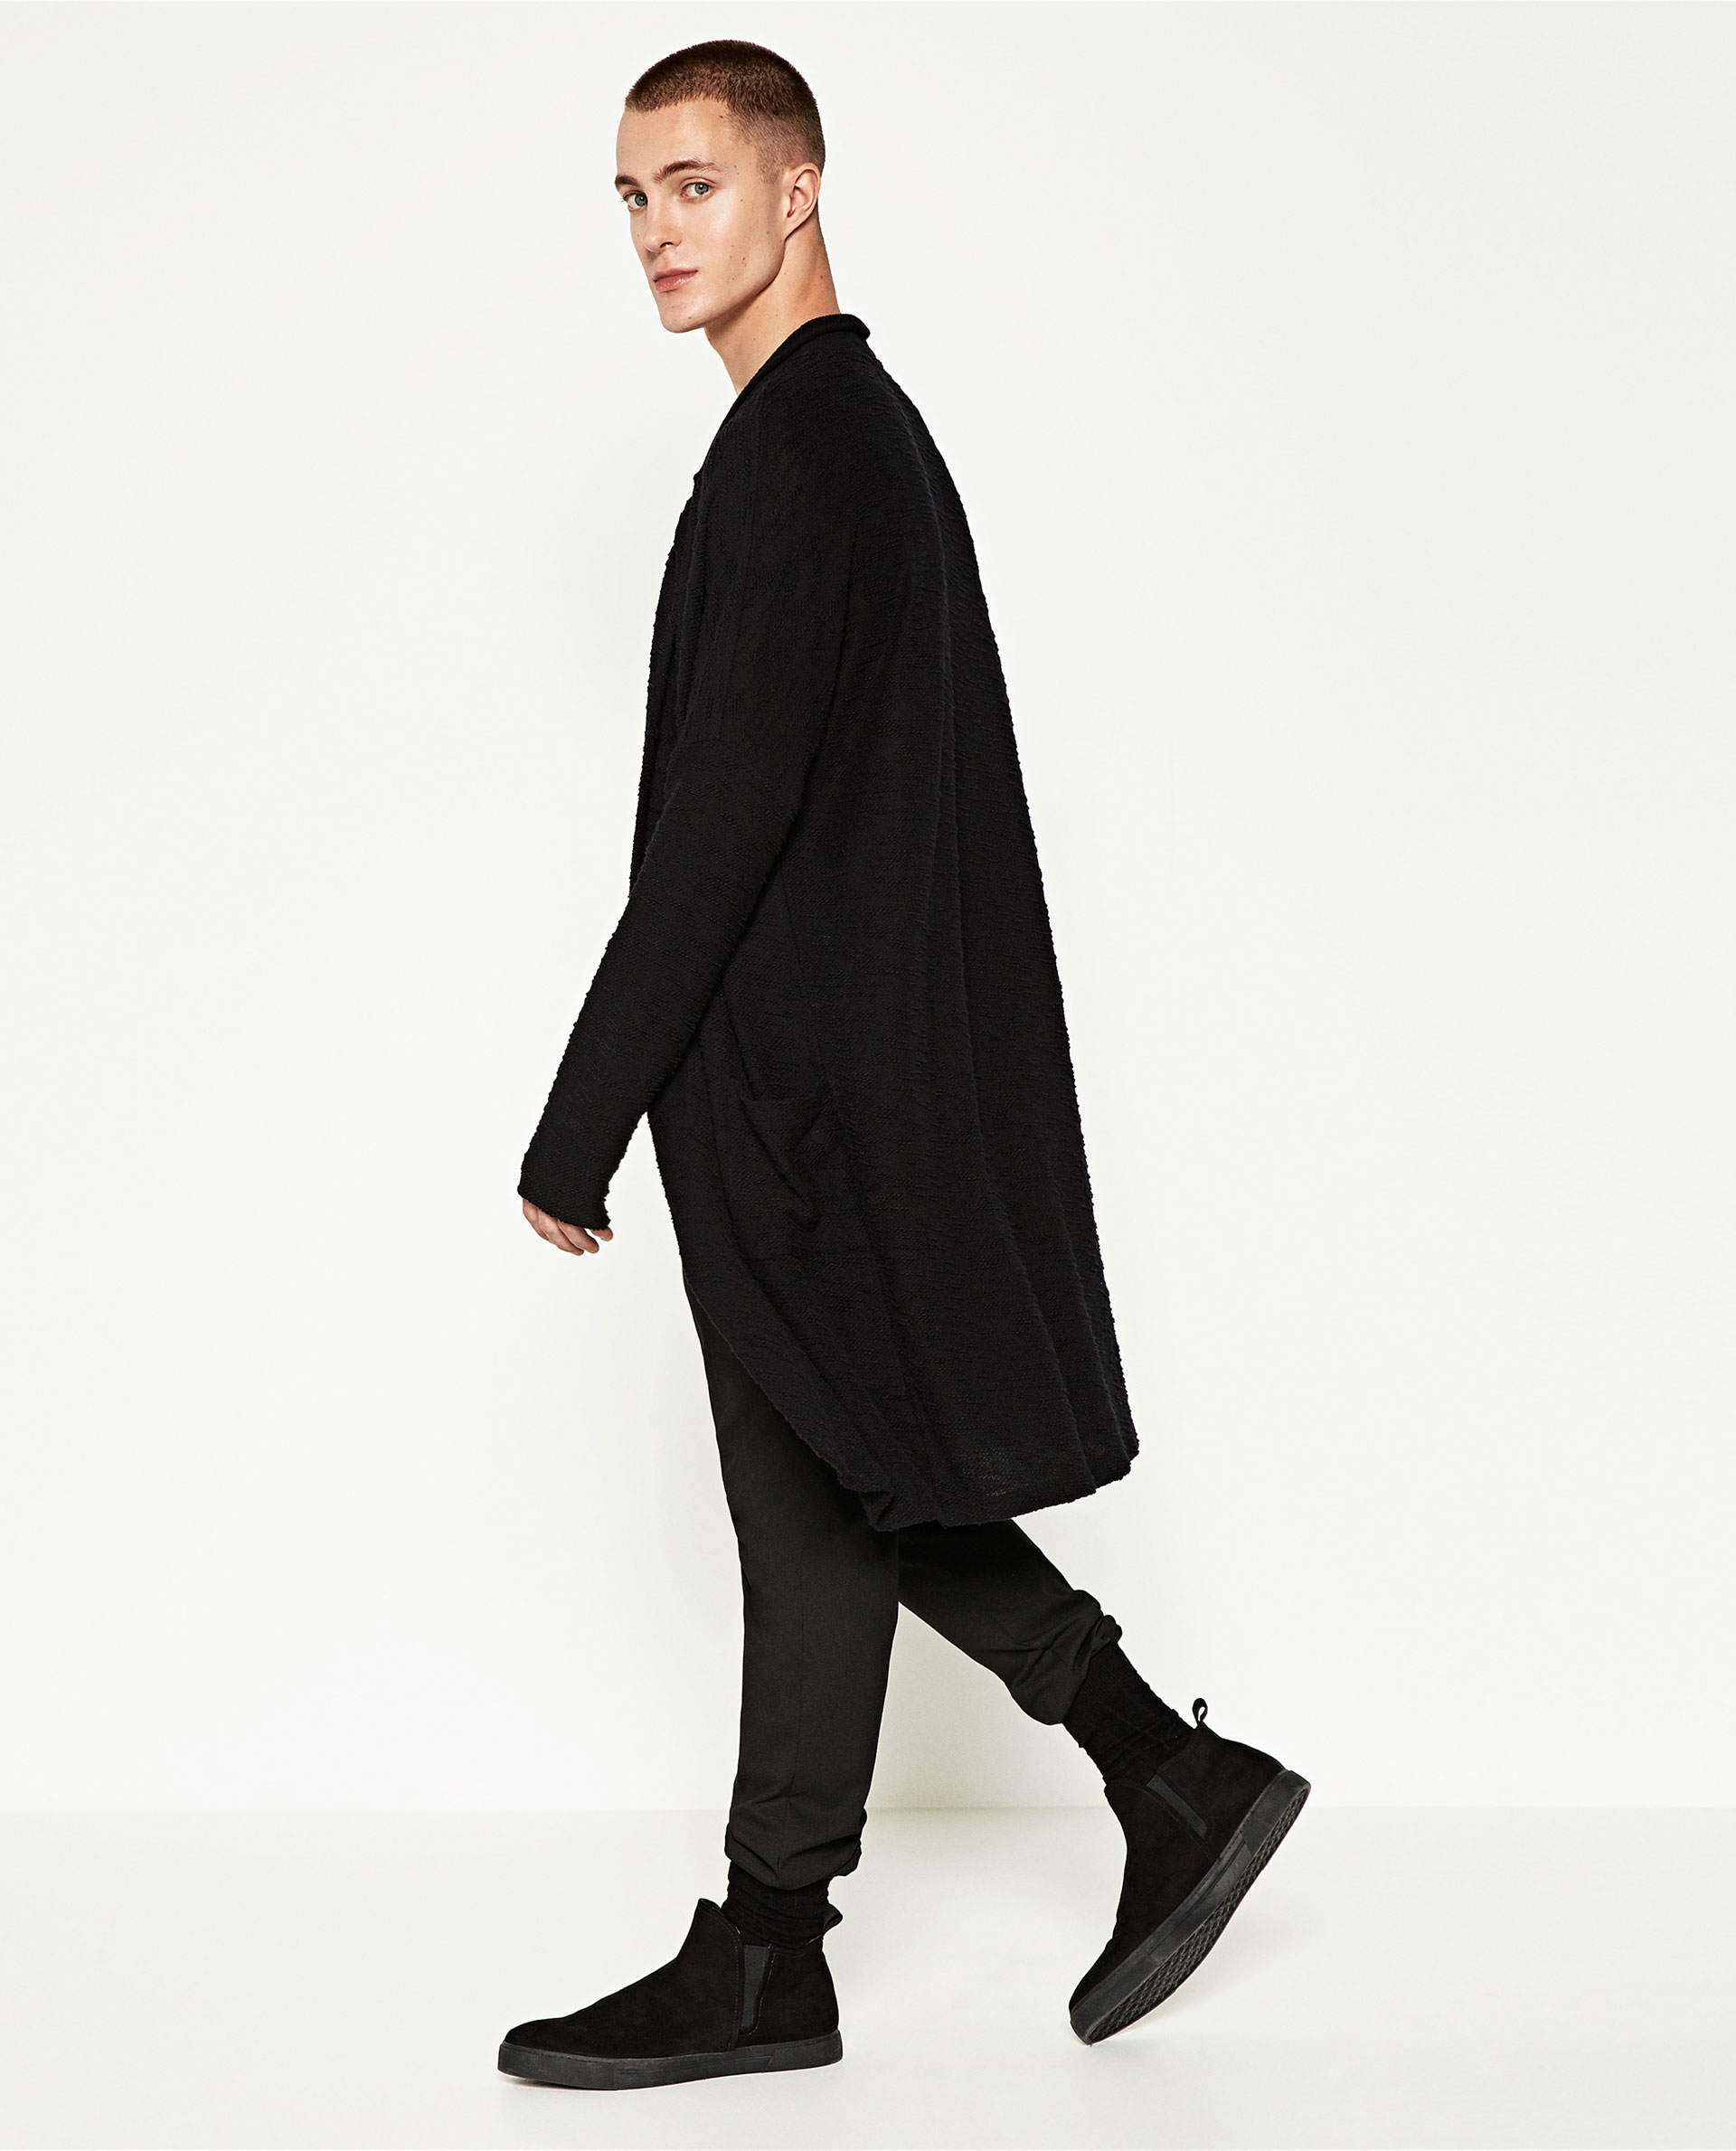 Stay cozy in style with knitwear for men at ZARA online. FREE SHIPPING without any complications.